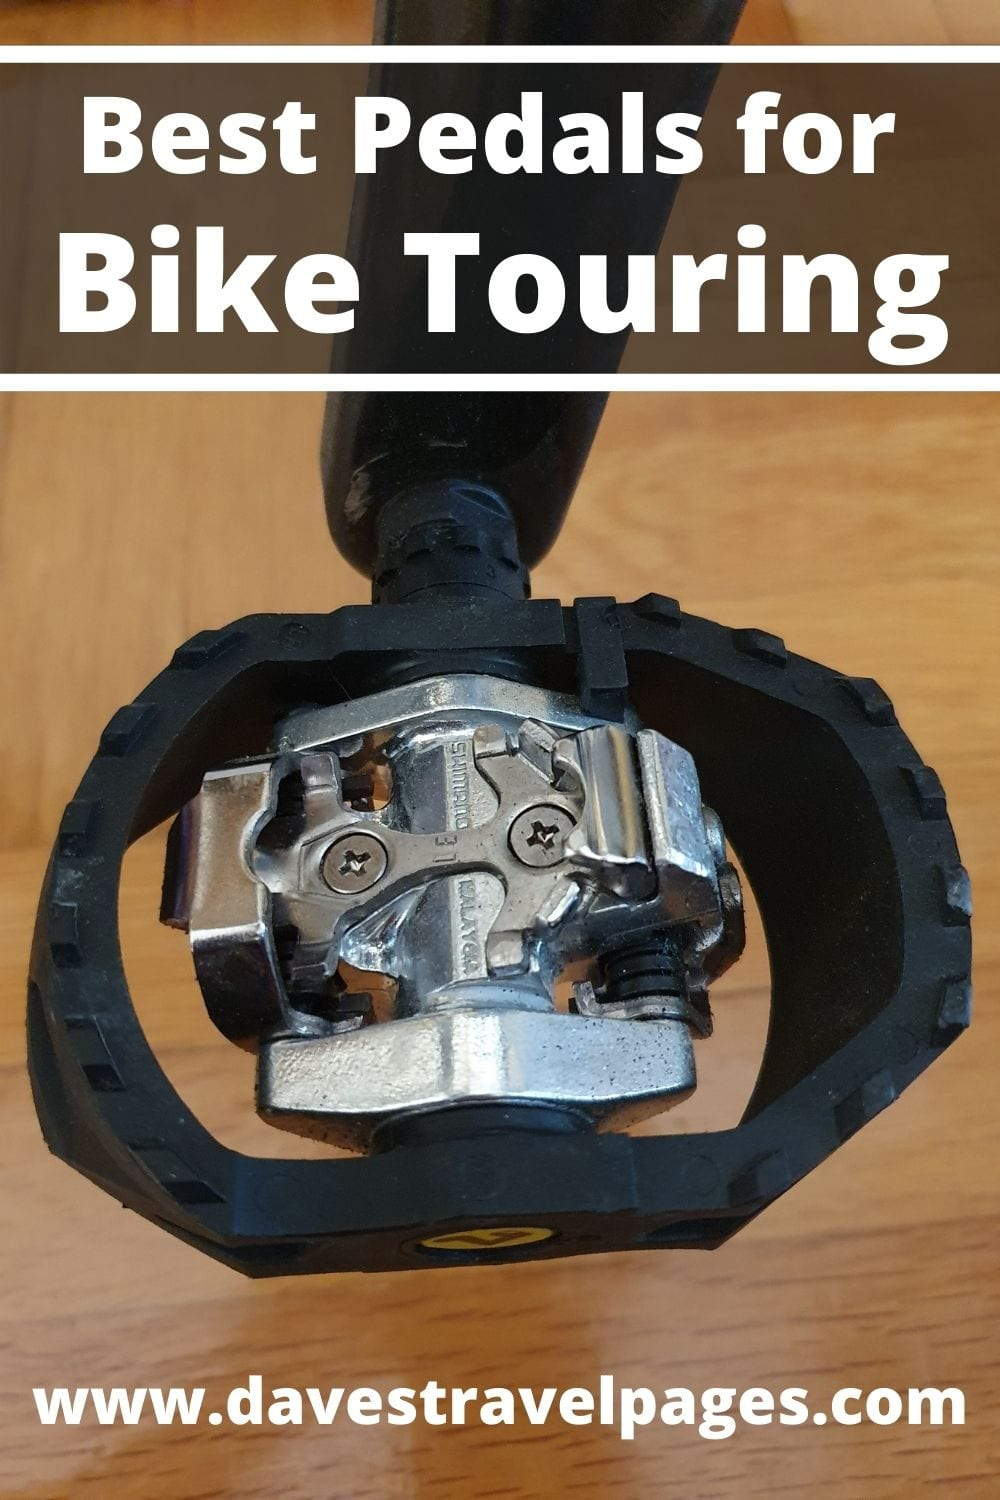 Best Pedals for Bike Touring and Bikepacking